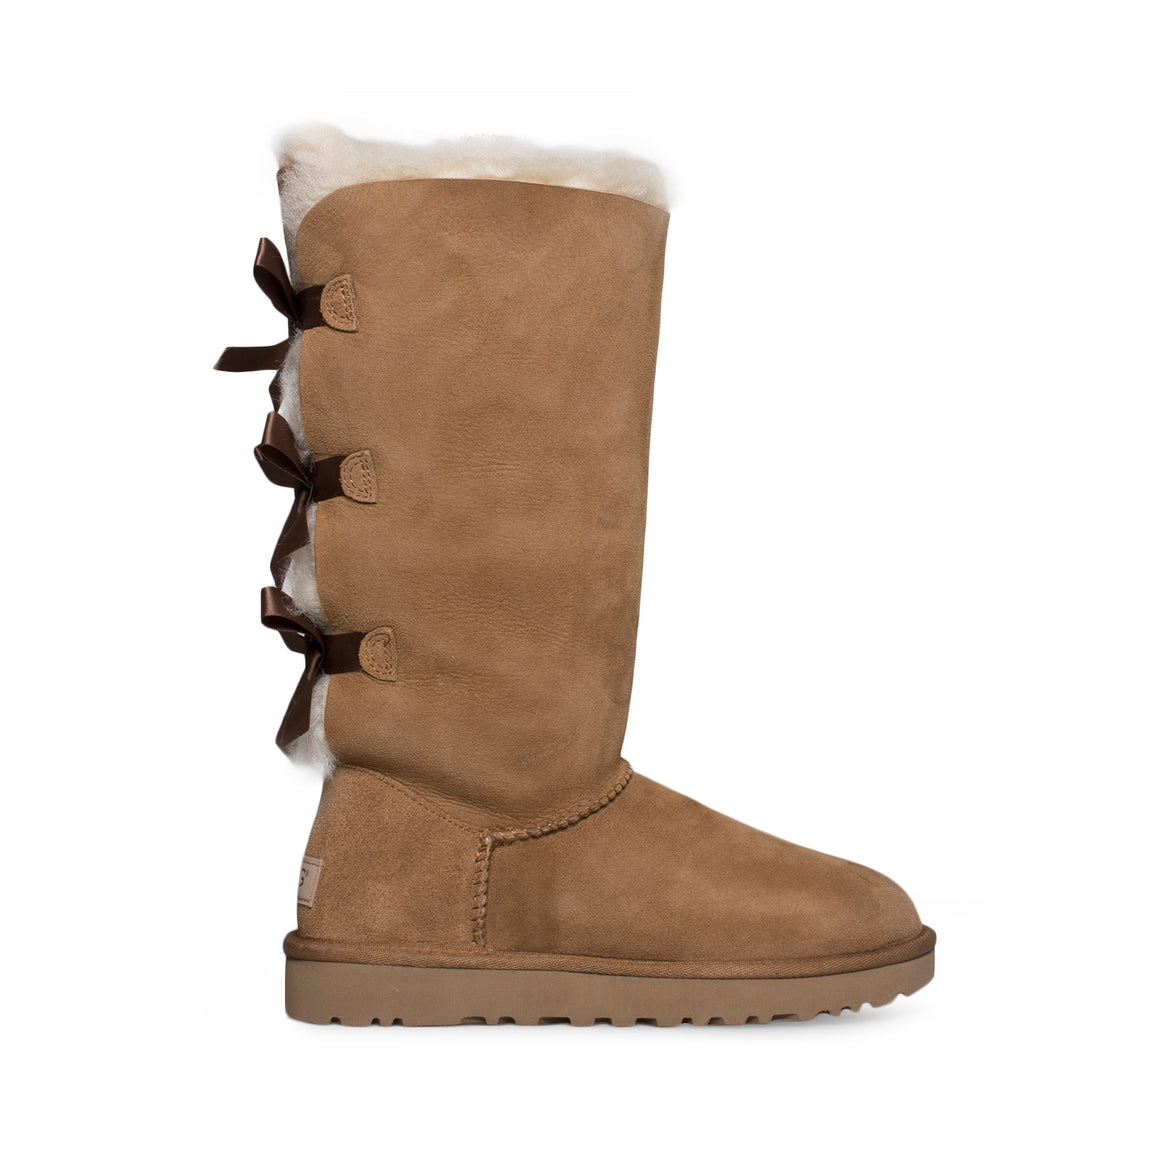 UGG Bailey Bow II Tall Chestnut Boots - Kids